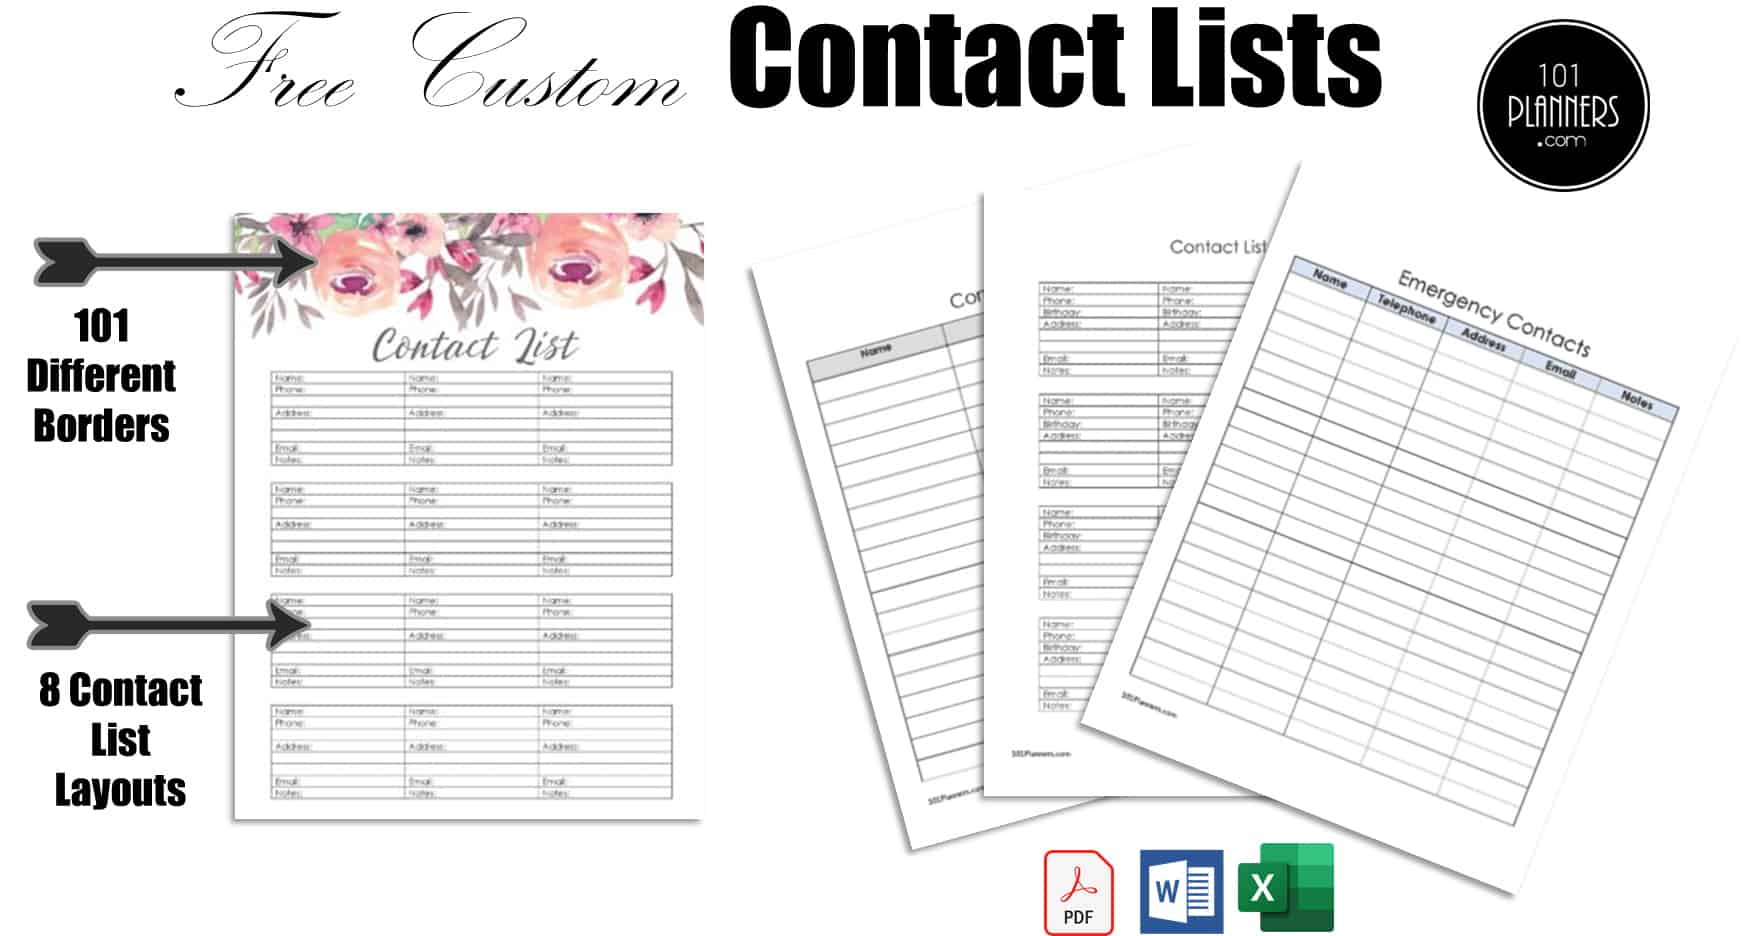 15/09/2017· in a phone log template, you'd need to record the source of the call for approaching calls, the goal of the call for active calls, the begin and end time of the calls and other data, for example, the qualities of the transmission or the call. Free Editable Contact List Template Editable Pdf Word Image